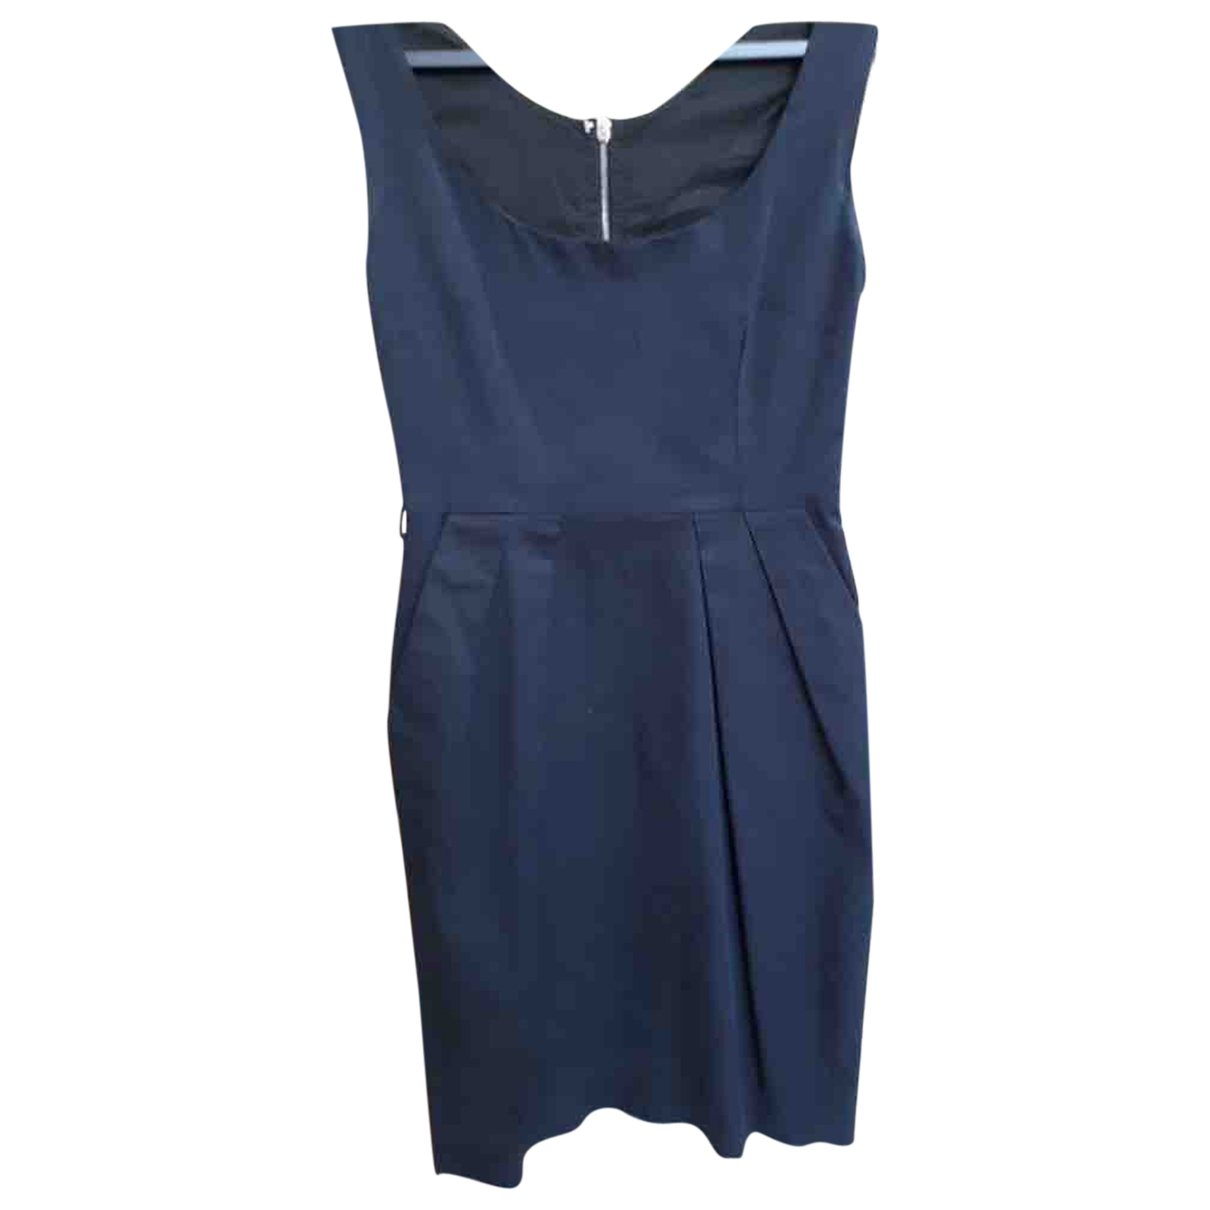 Dolce & Gabbana \N Anthracite Cotton dress for Women 40 IT